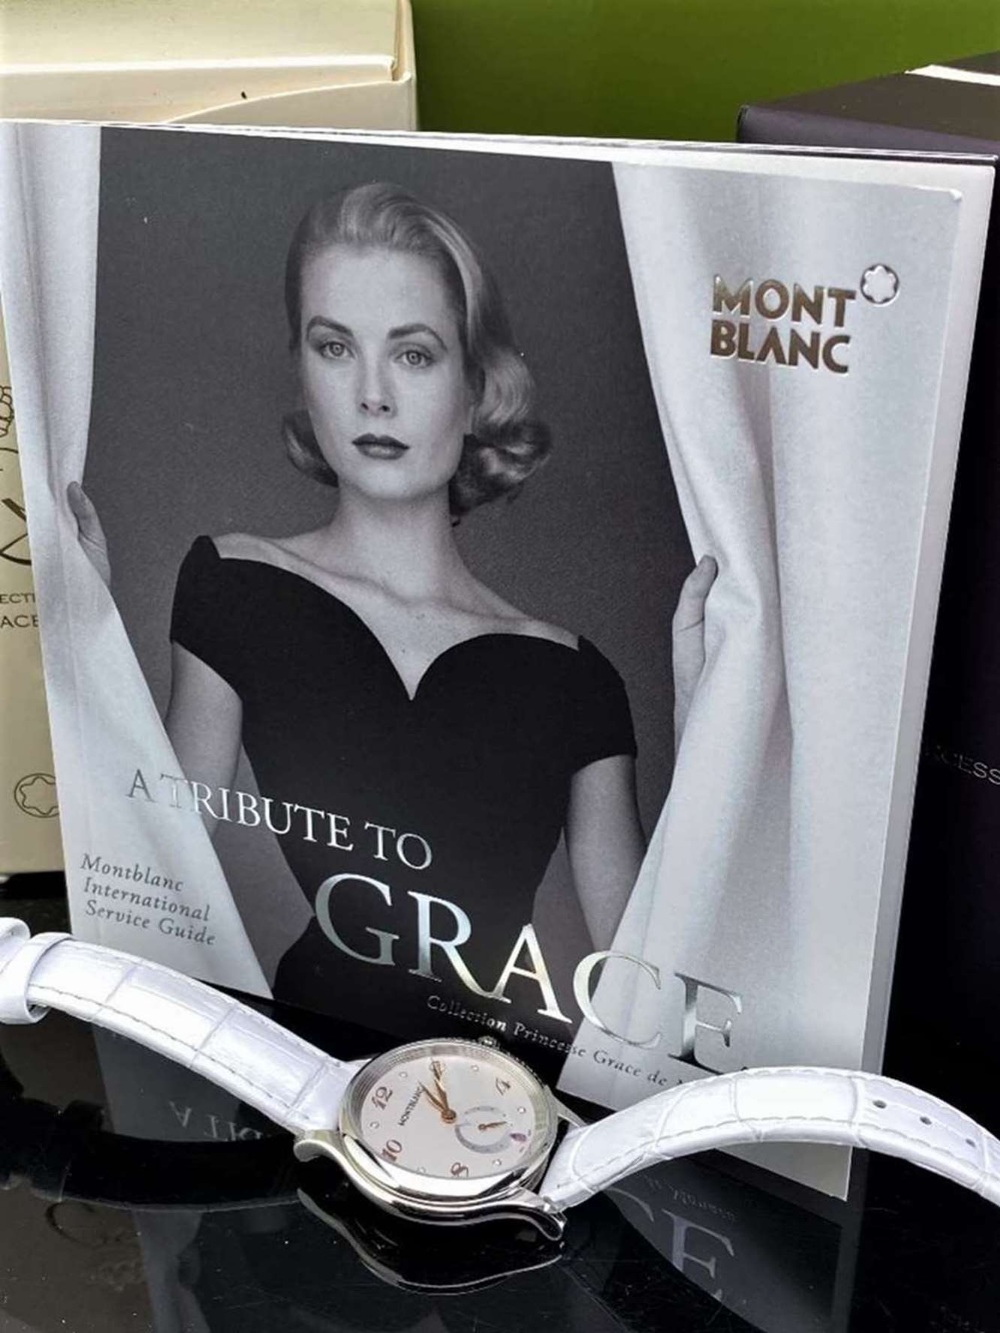 Montblanc Special Edition Princess Grace Of Monaco Diamond Watch - Image 2 of 11